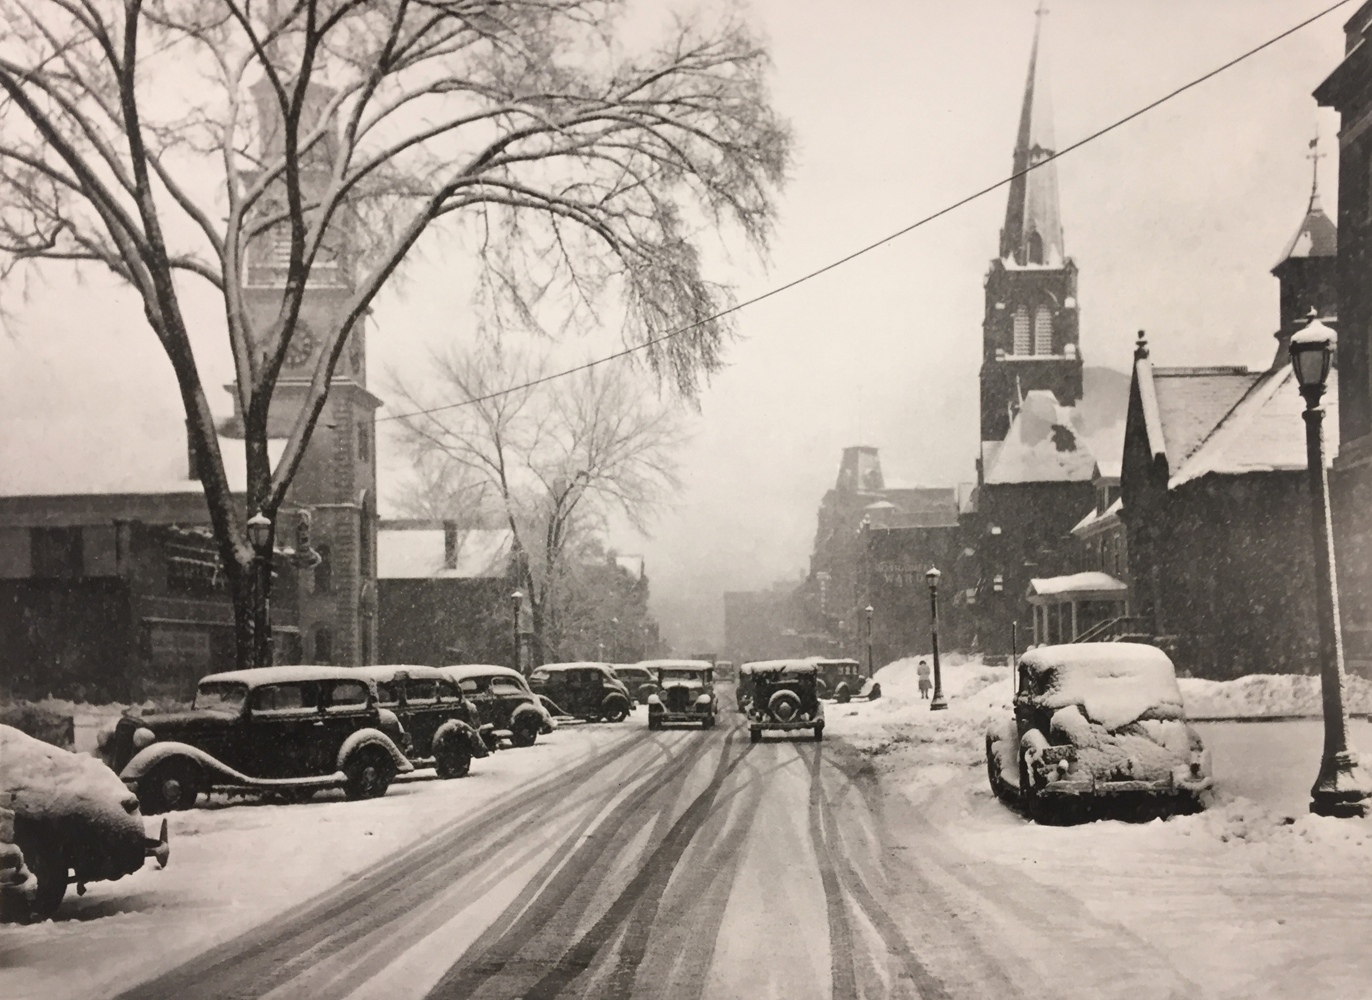 Marion Post Wolcott, Main street during blizzard, Brattleboro, Vermont, 1938, gelatin silver print, 11 x 14 inches, price on request